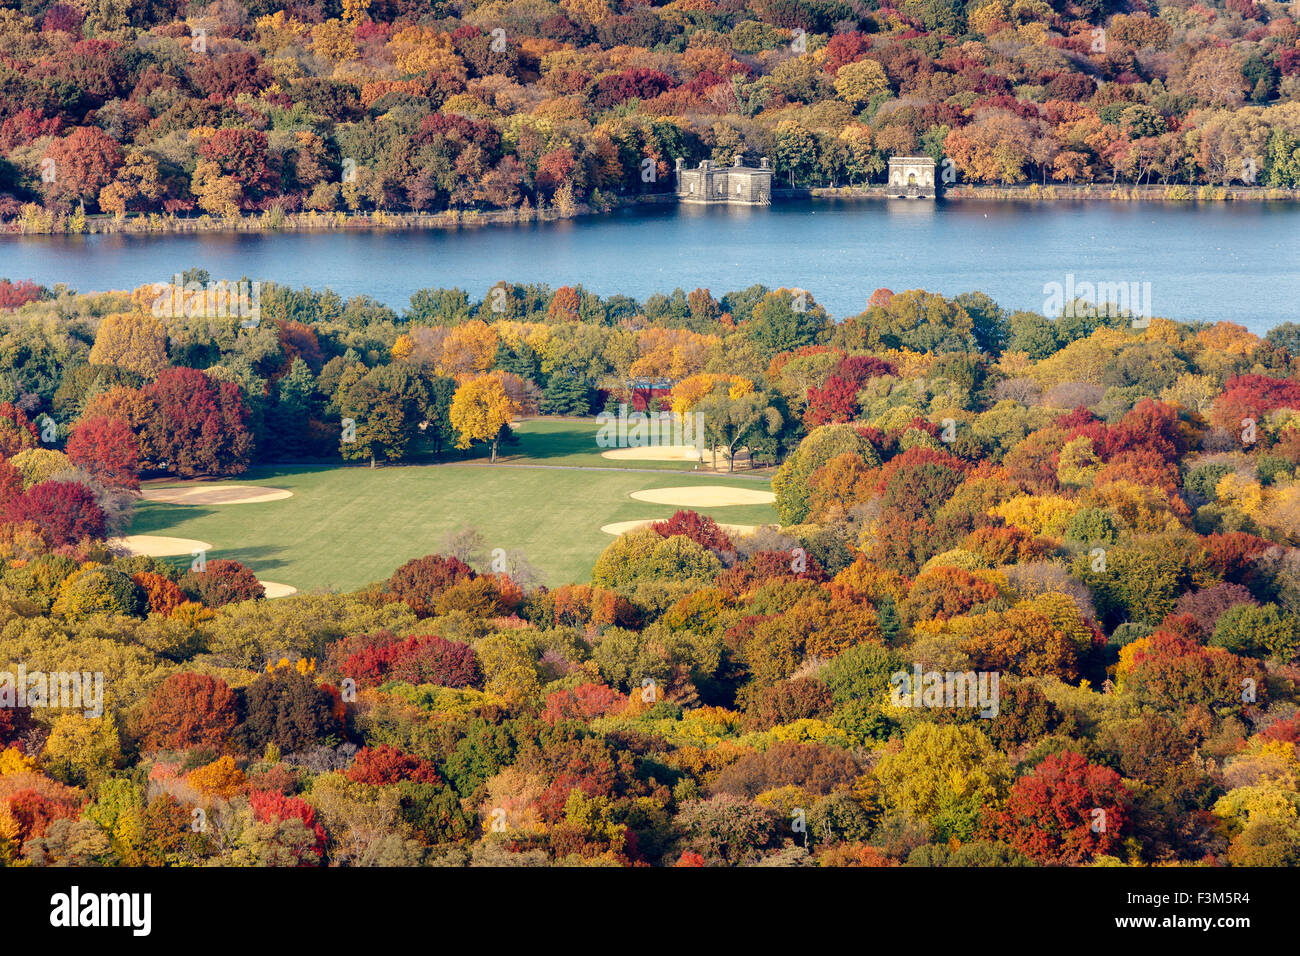 Aerial view of the Great Lawn and Jacqueline Kennedy Onassis Reservoir in Central Park with autumn foliage colors. - Stock Image